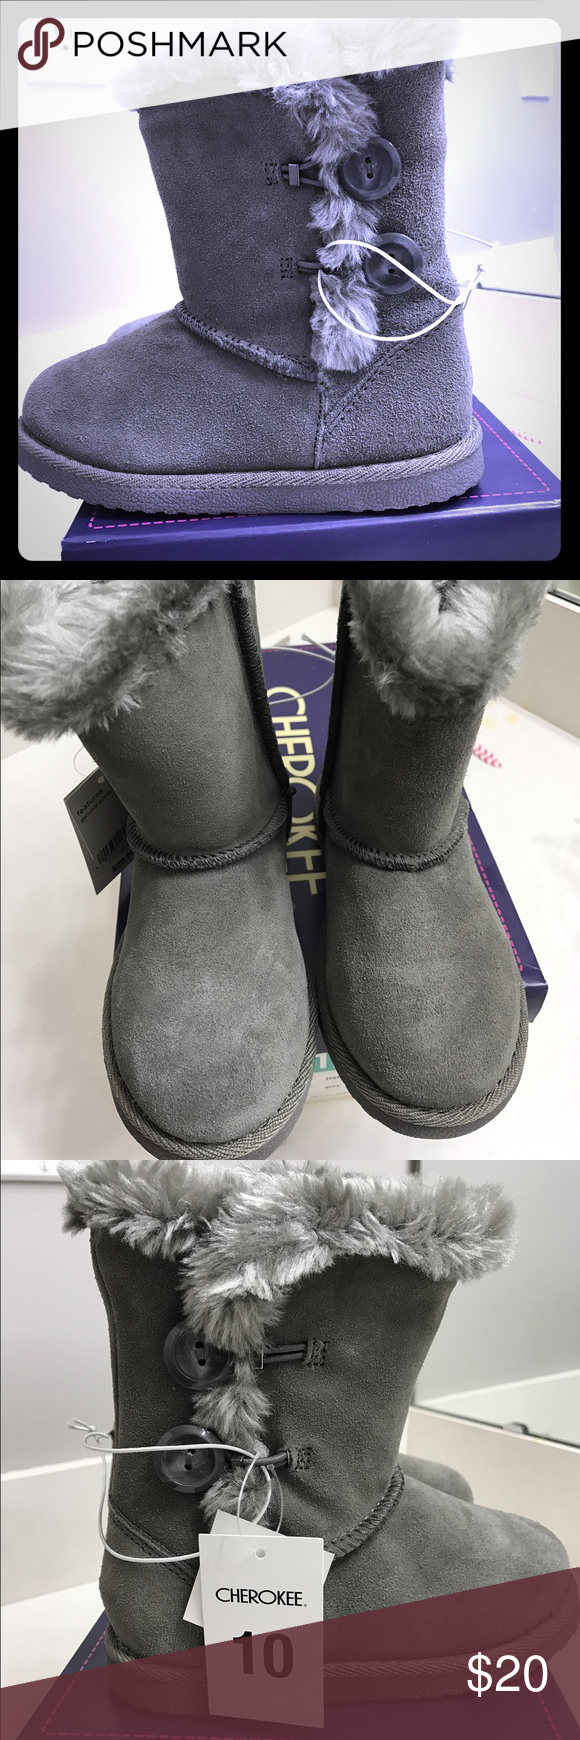 Girls winter boots size 10 NWT And box. Will ship same day or next Cherokee Shoes Boots